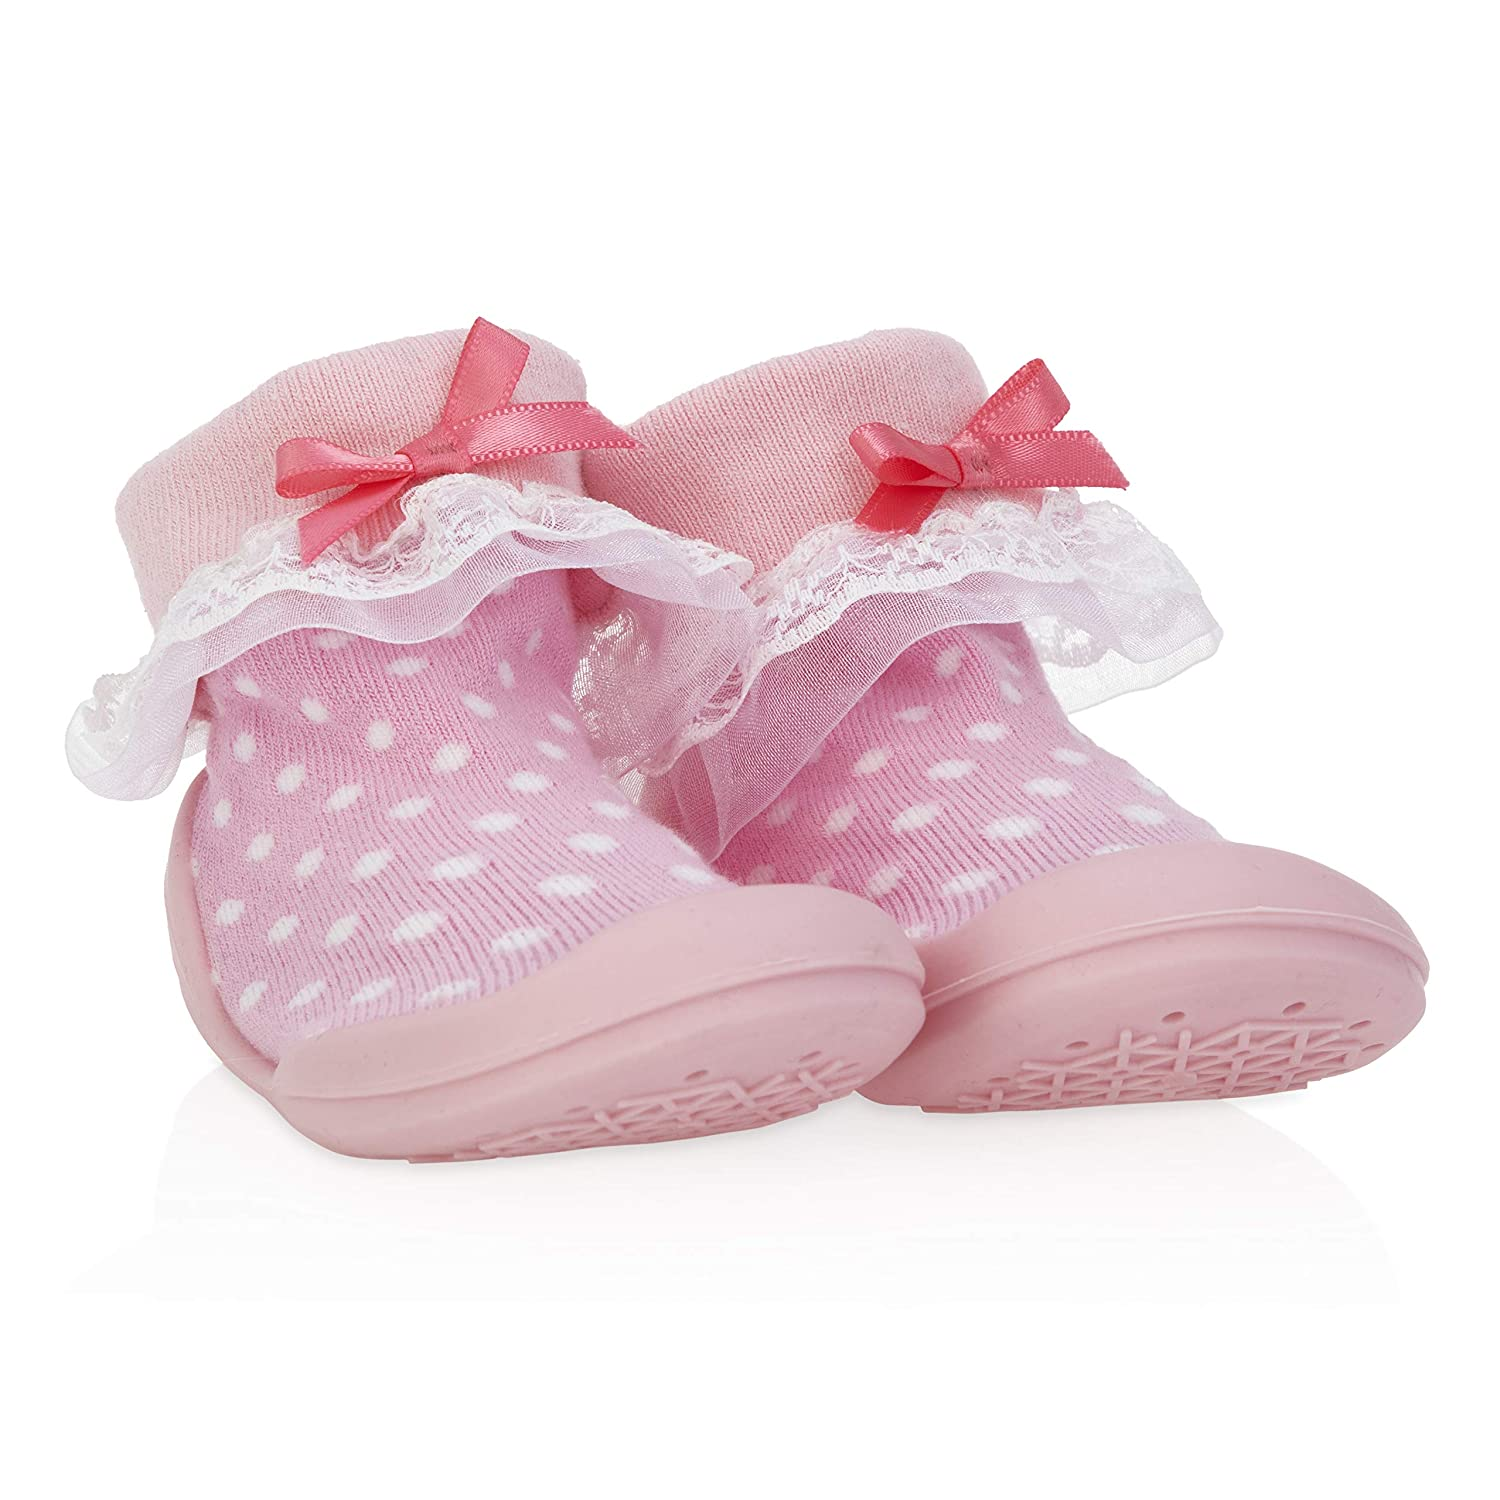 Nuby Snekz Comfortable Rubber Sole Sock Shoes for First Steps- Pink Polka Dots/Small 7-14 Months